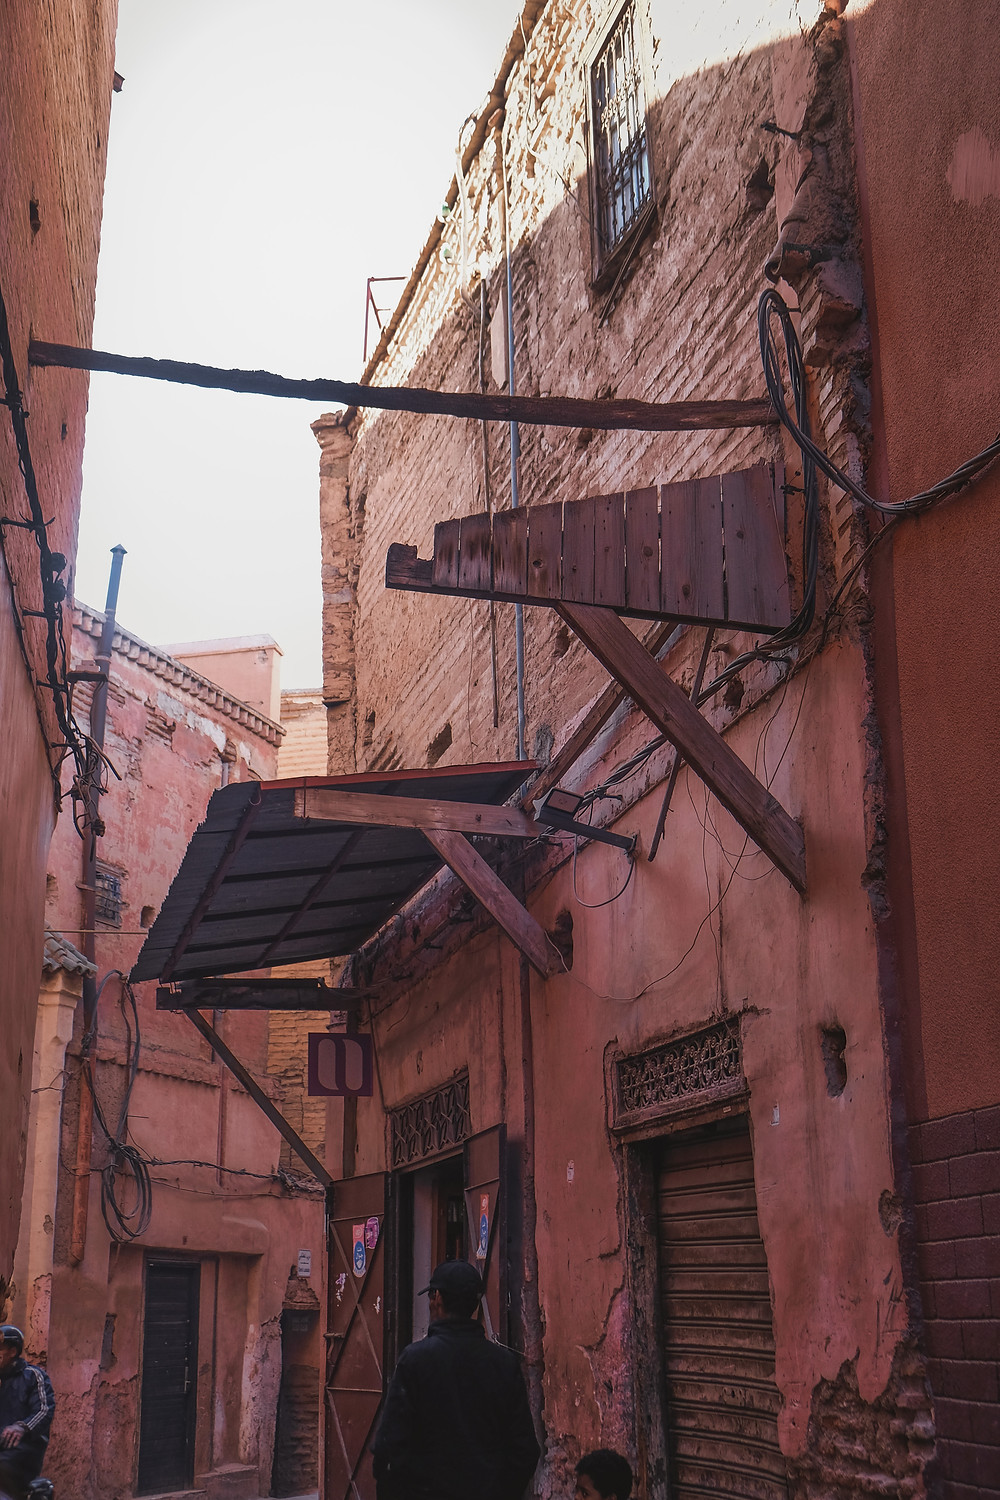 Street Photography: Claustrophobic lanes of pink adobe buildings with timber doors and crisscrossing wires of the Marrakech Medina. | RollingBear Travels